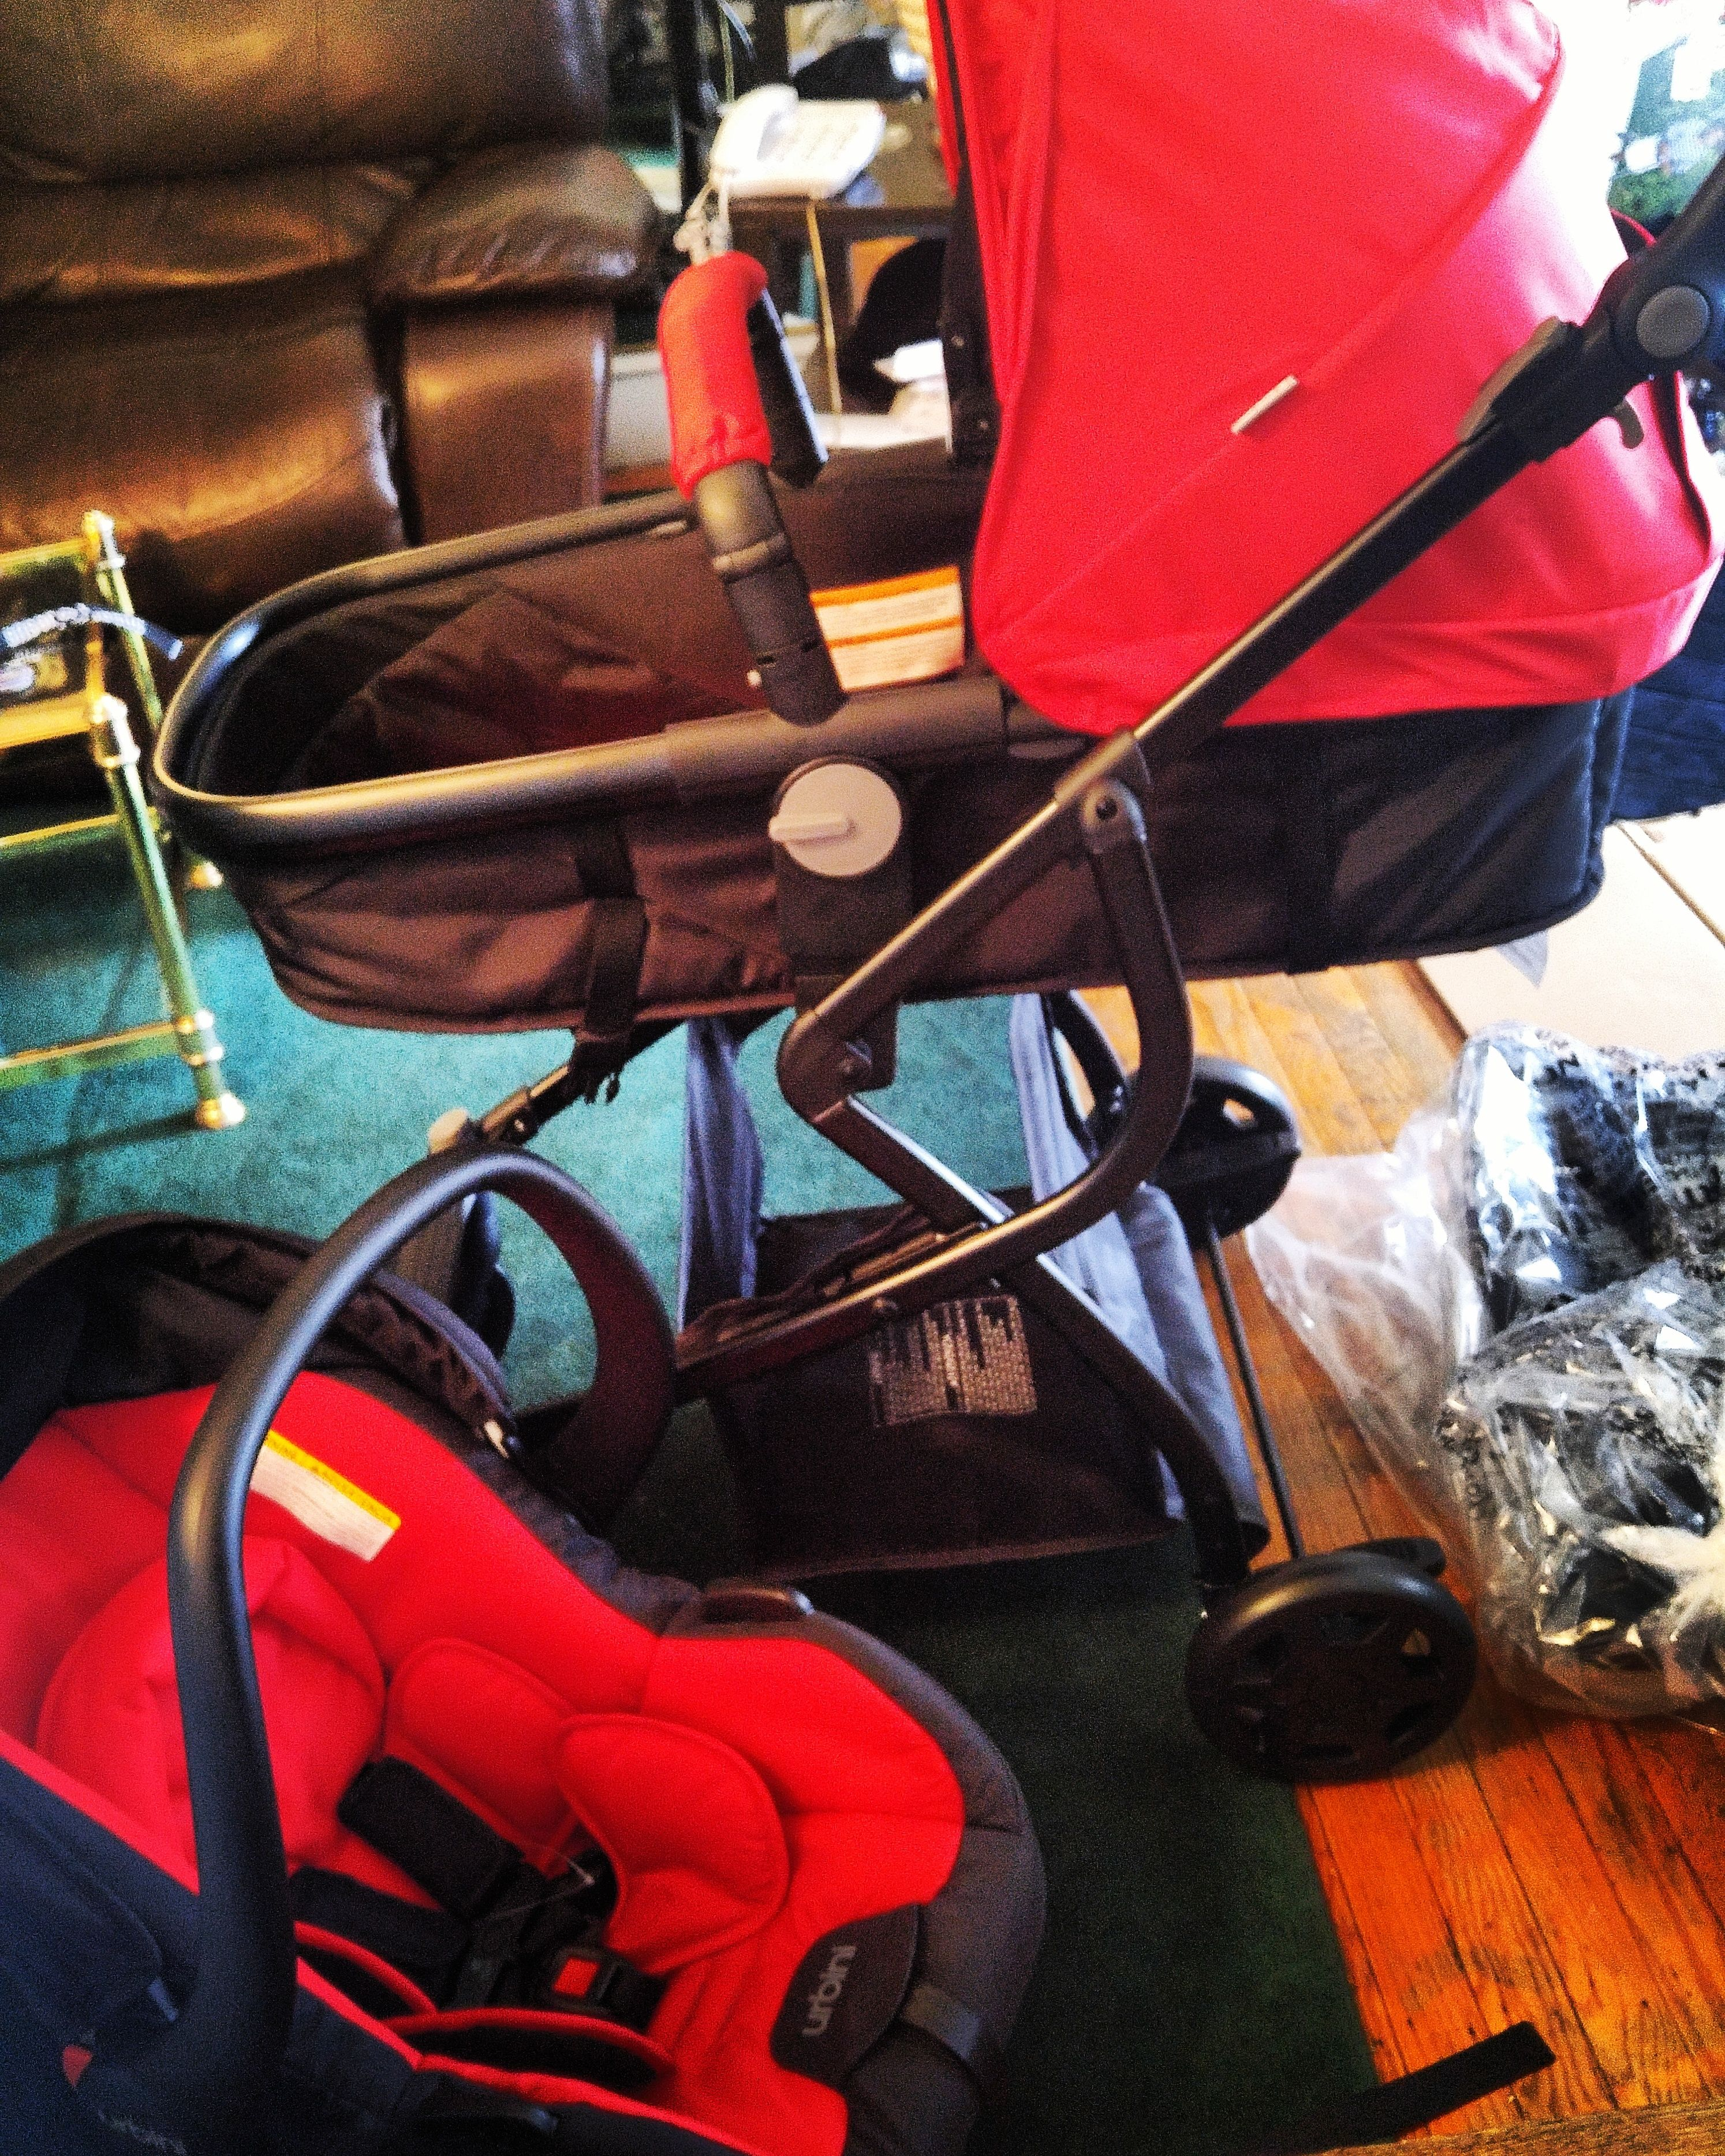 For expecting Mommys looking for a travel system I highly